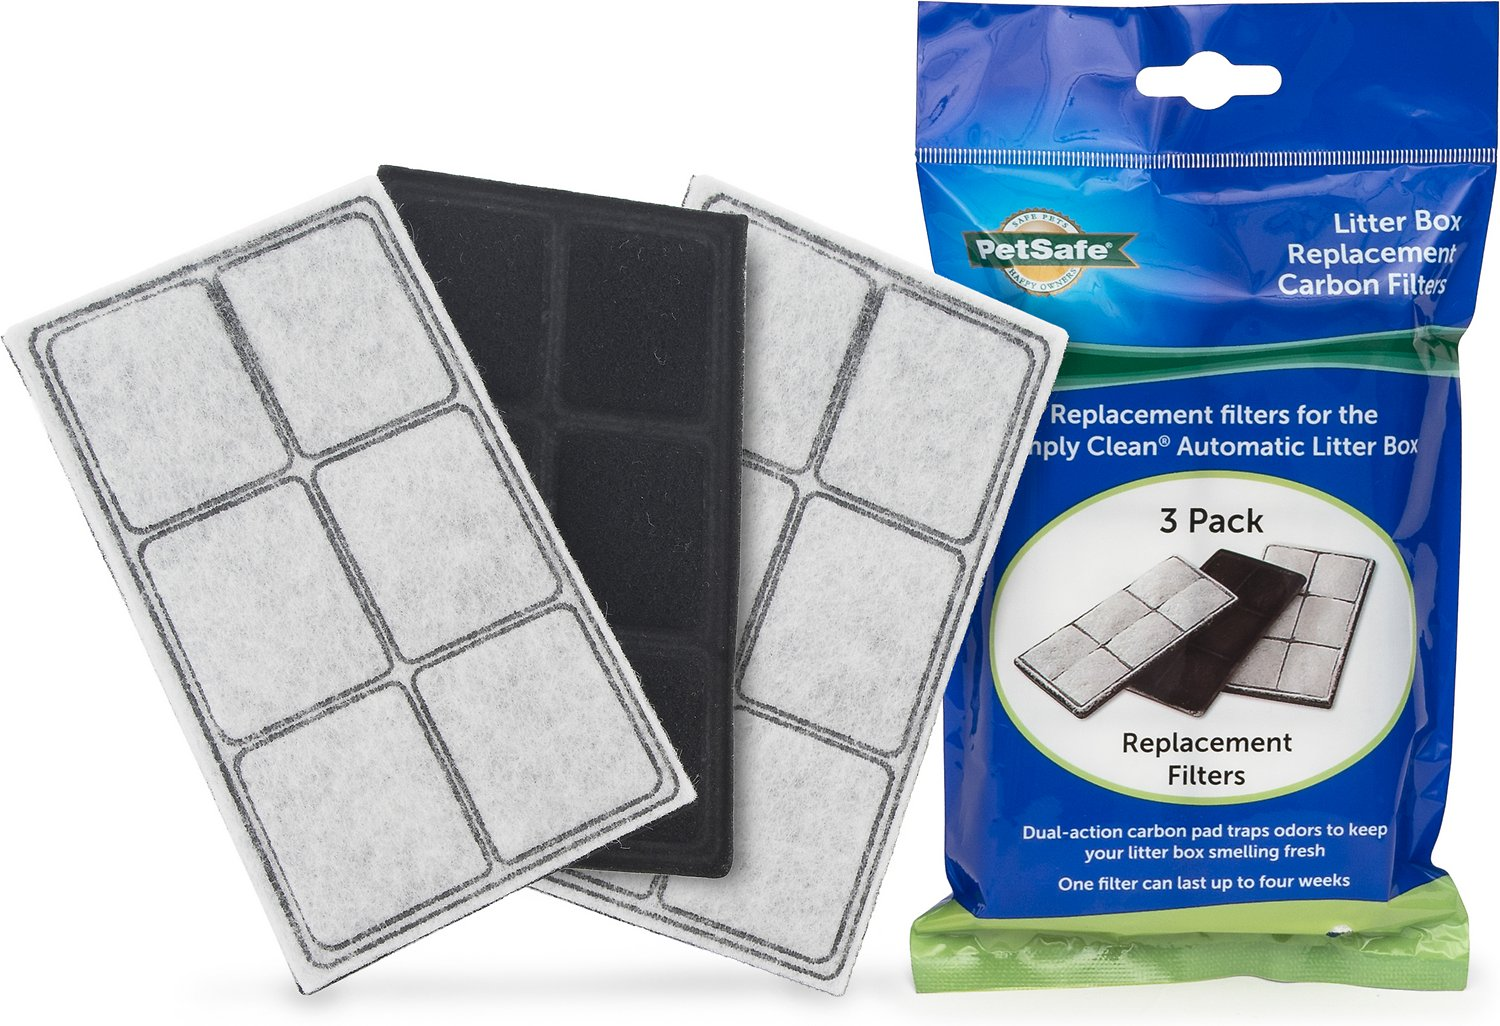 Petsafe Simply Clean Self Cleaning Litter Box Replacement Carbon Filters 3 Pack Chewy Com